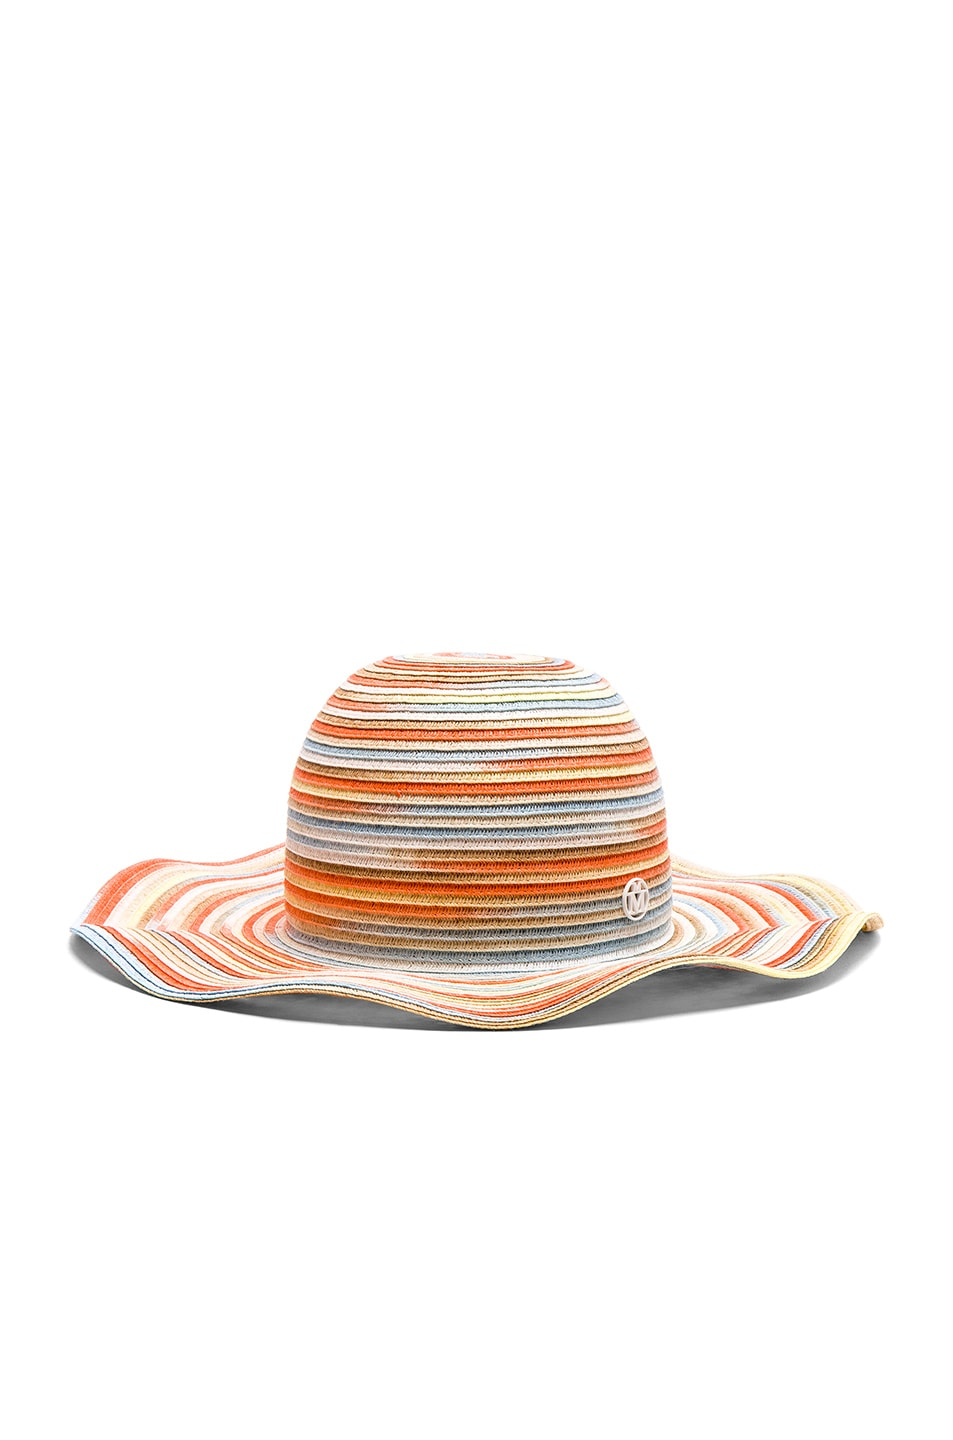 Image 1 of Maison Michel for FWRD Short Capeline Paper Straw Hat in Bleach Color Tie Dye